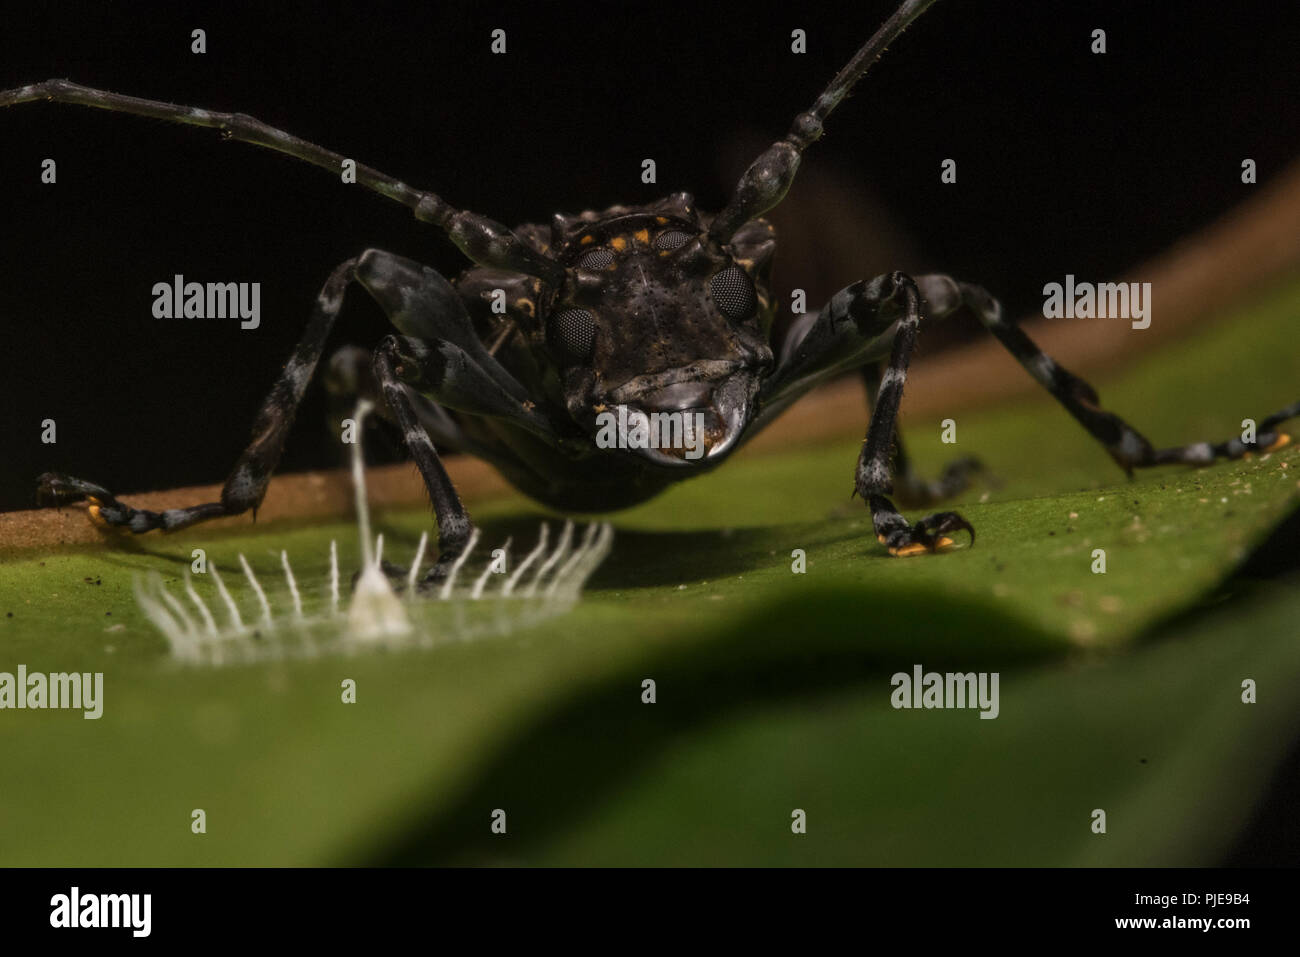 This mysterious structure is called silkhenge, it is made by a spider to house its eggs. Here a beetle stands nearby. - Stock Image